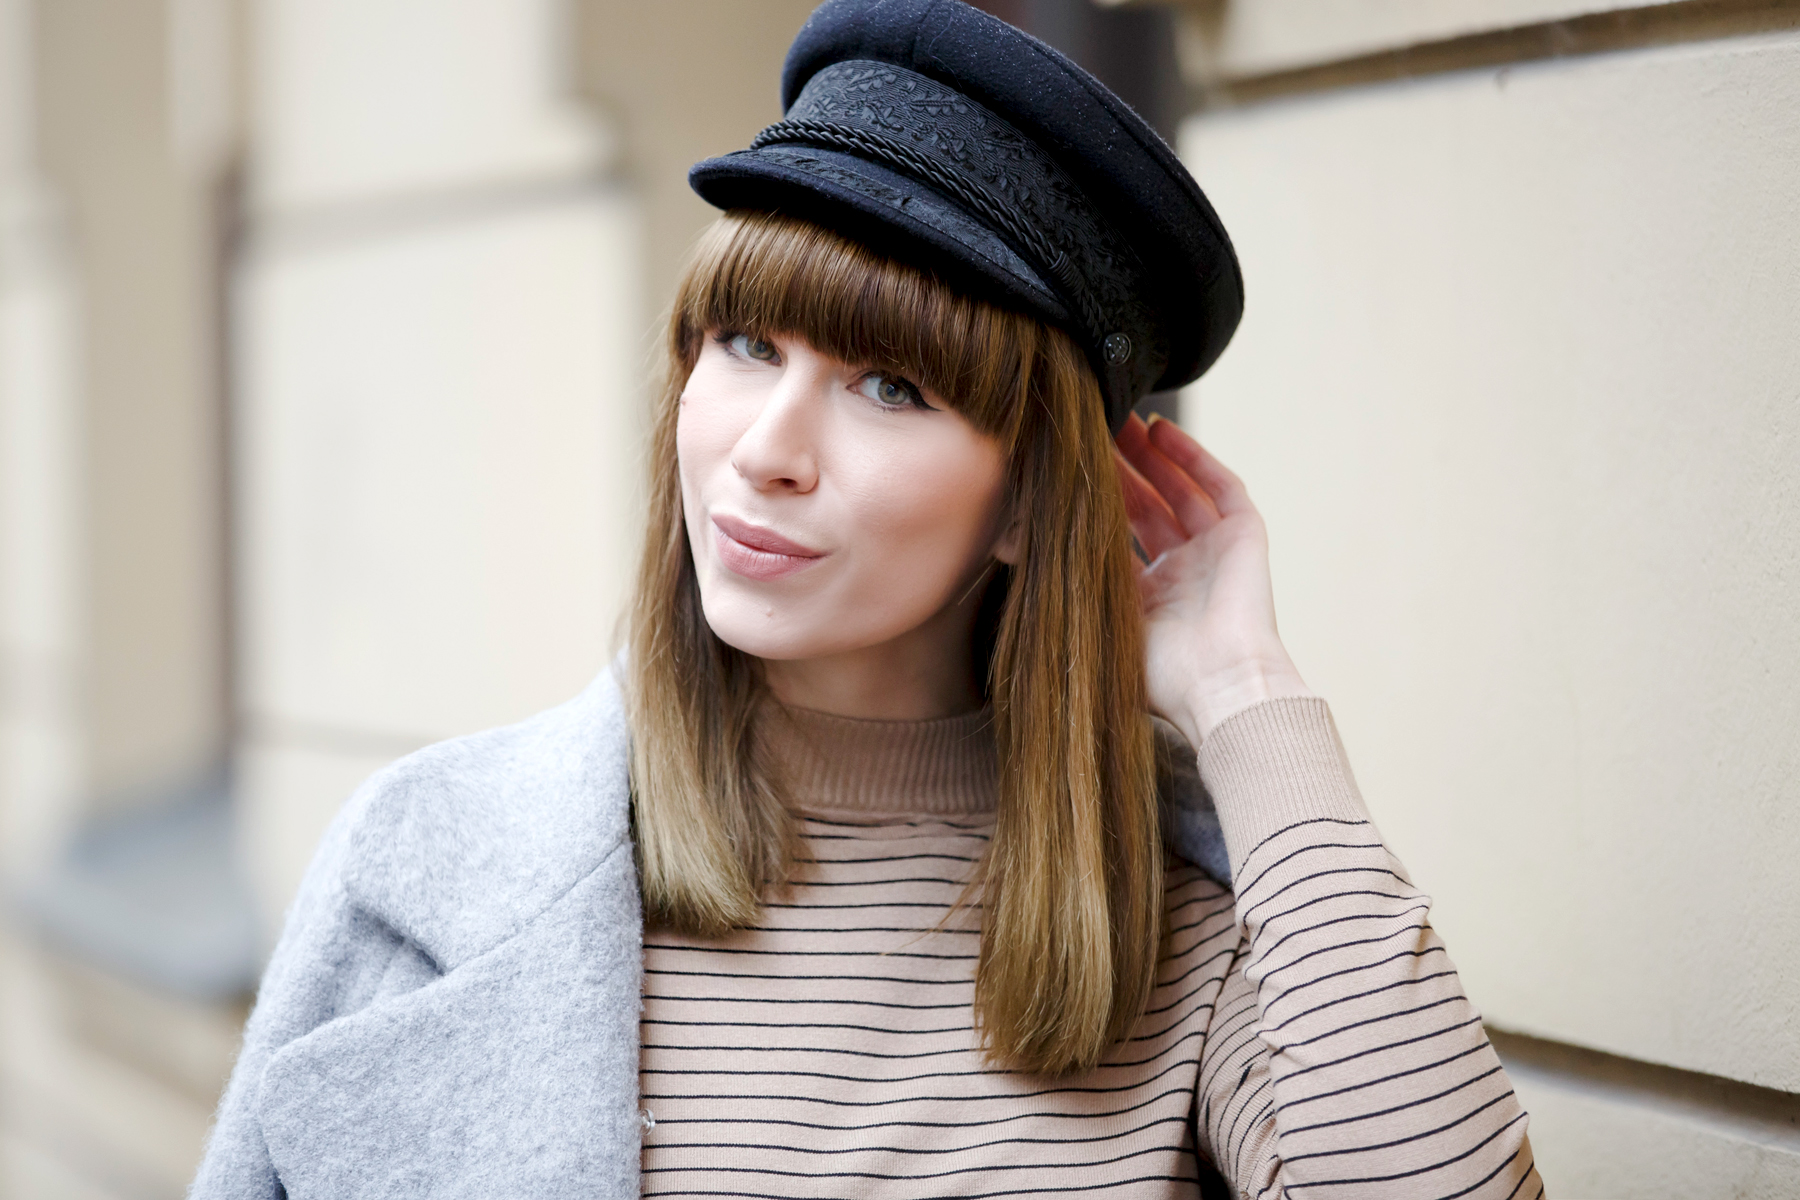 stripes denim 80s french hat parisian parisienne style stripe brown heels sam edelman ysl saint laurent paris coat chic bangs brunette modeblog cats & dogs blog ricarda schernus fashionblogger germany 1